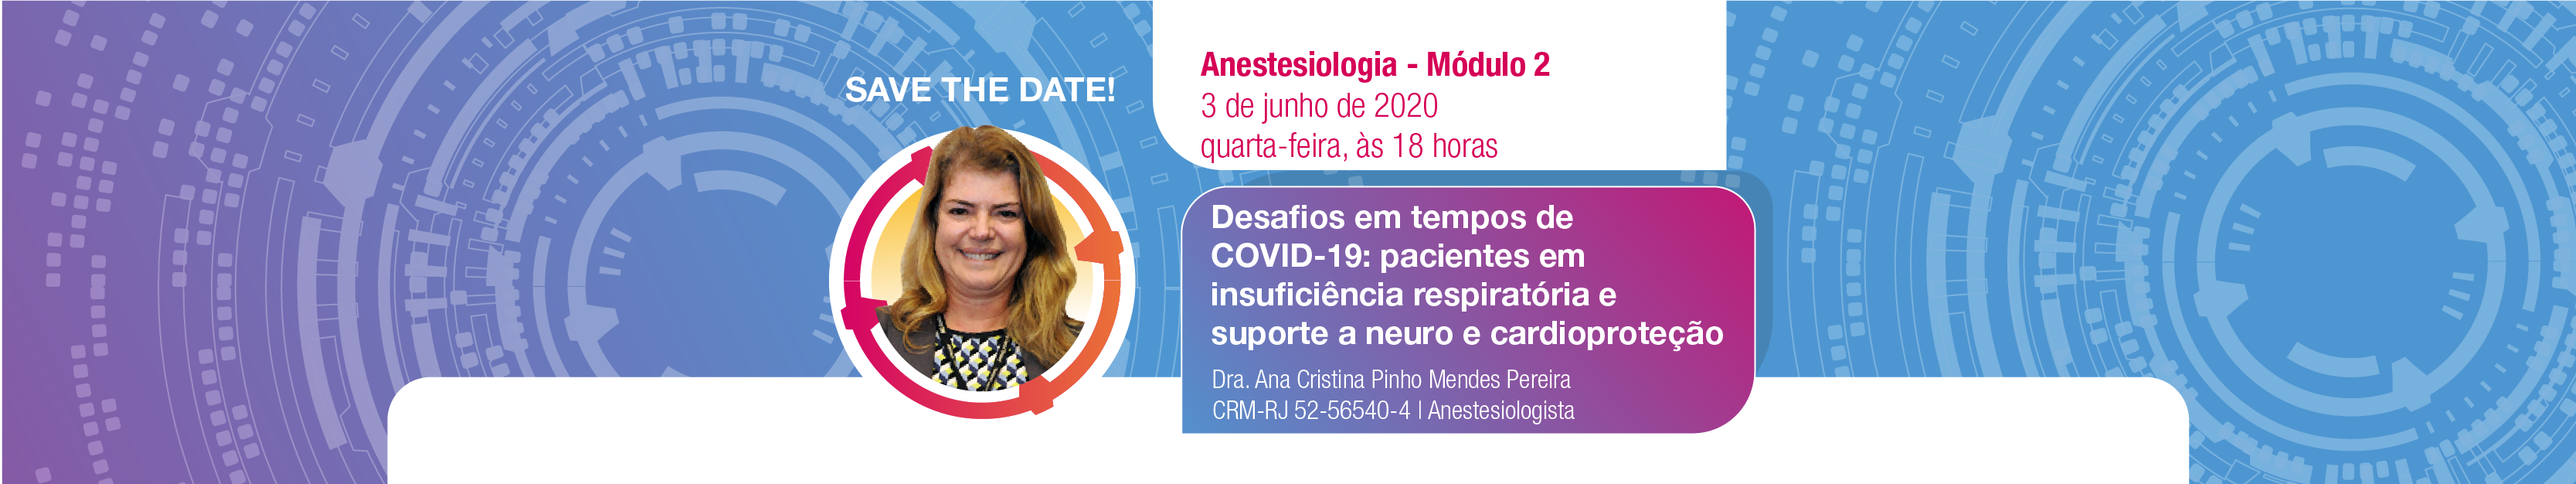 Aulas-banners-Módulo 2 Anestesiologia save the date